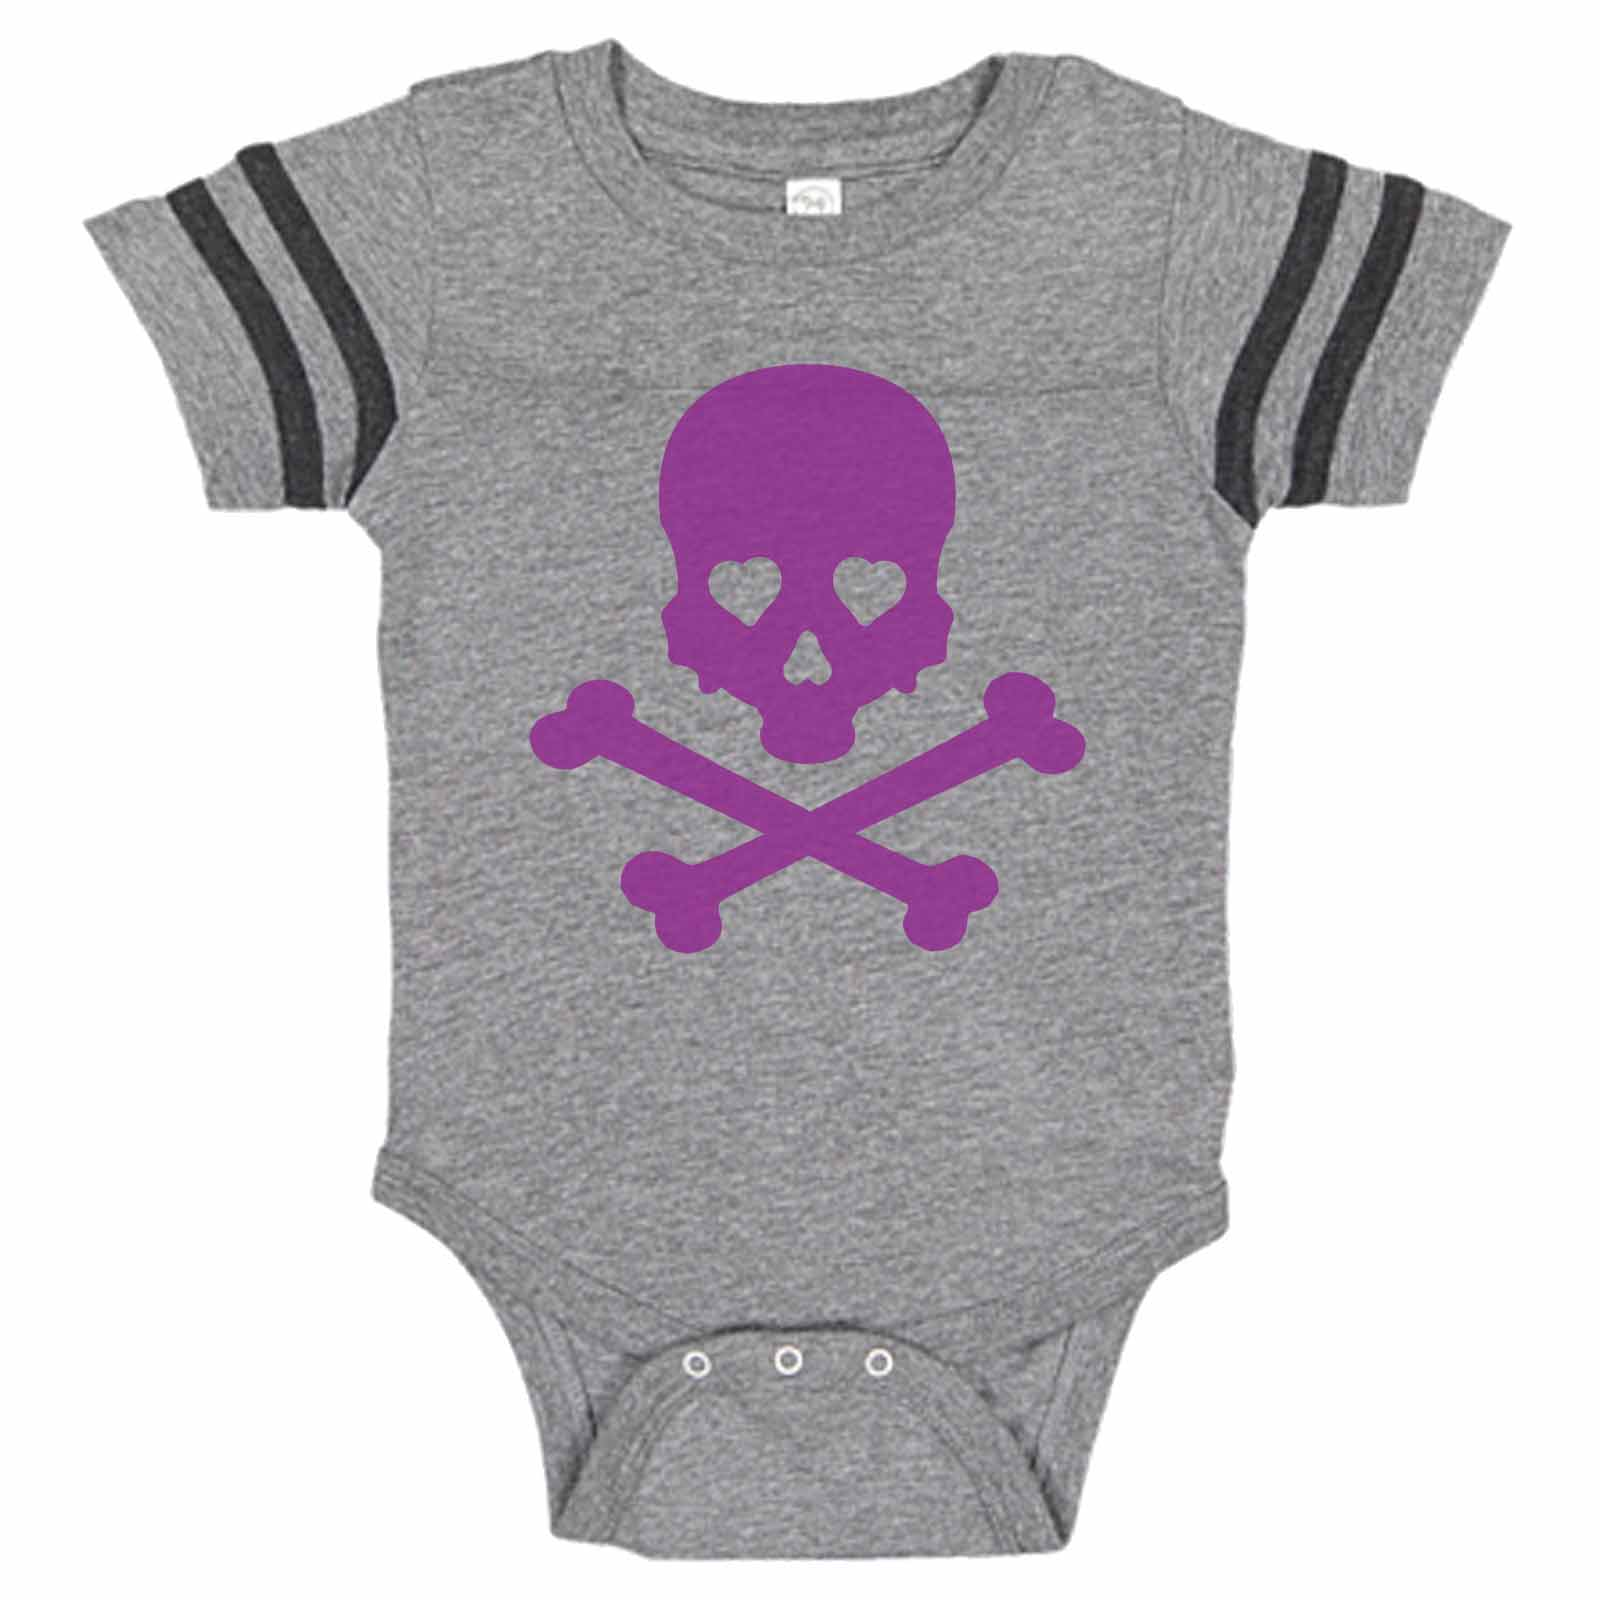 HappyLifea Skull Spider Baby Pajamas Bodysuits Clothes Onesies Jumpsuits Outfits Black